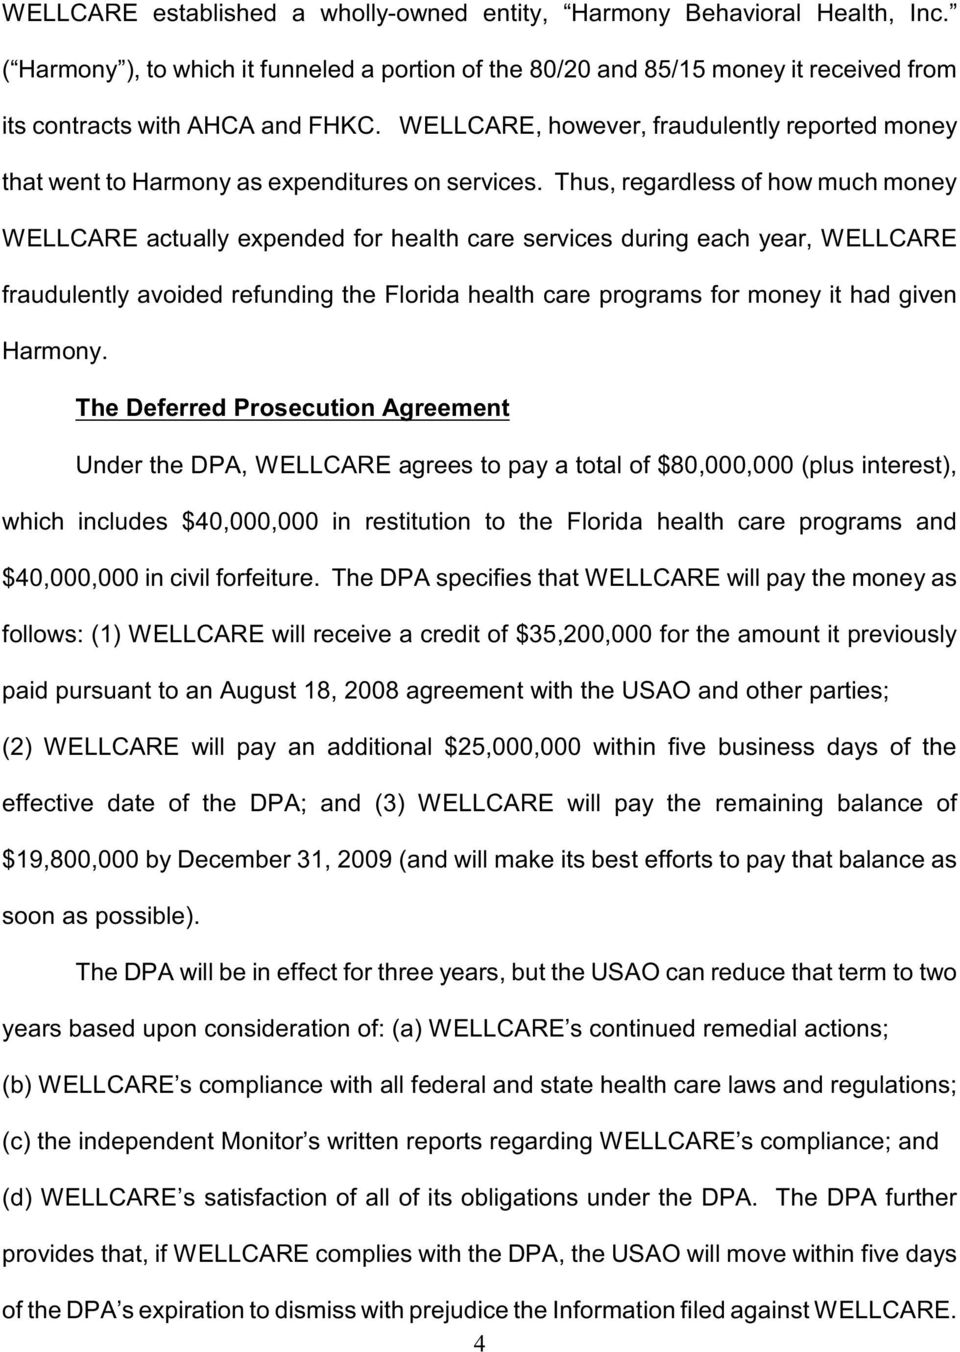 Thus, regardless of how much money WELLCARE actually expended for health care services during each year, WELLCARE fraudulently avoided refunding the Florida health care programs for money it had